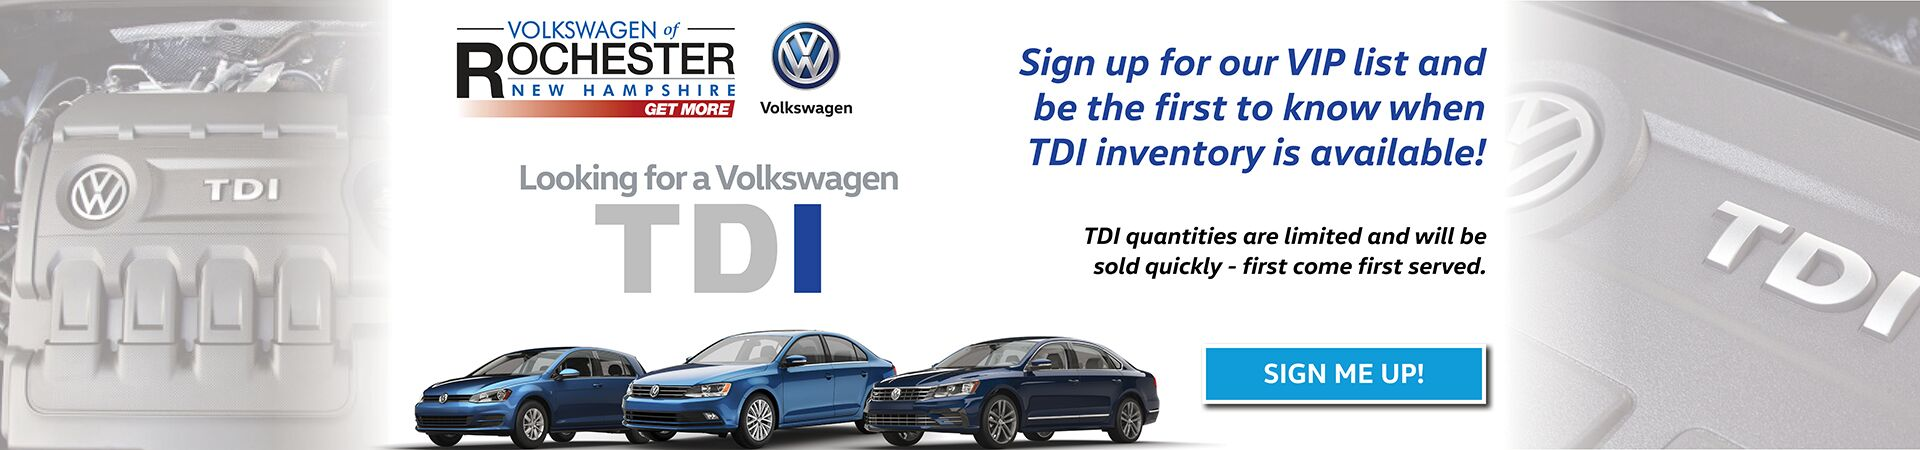 TDI Sign Up